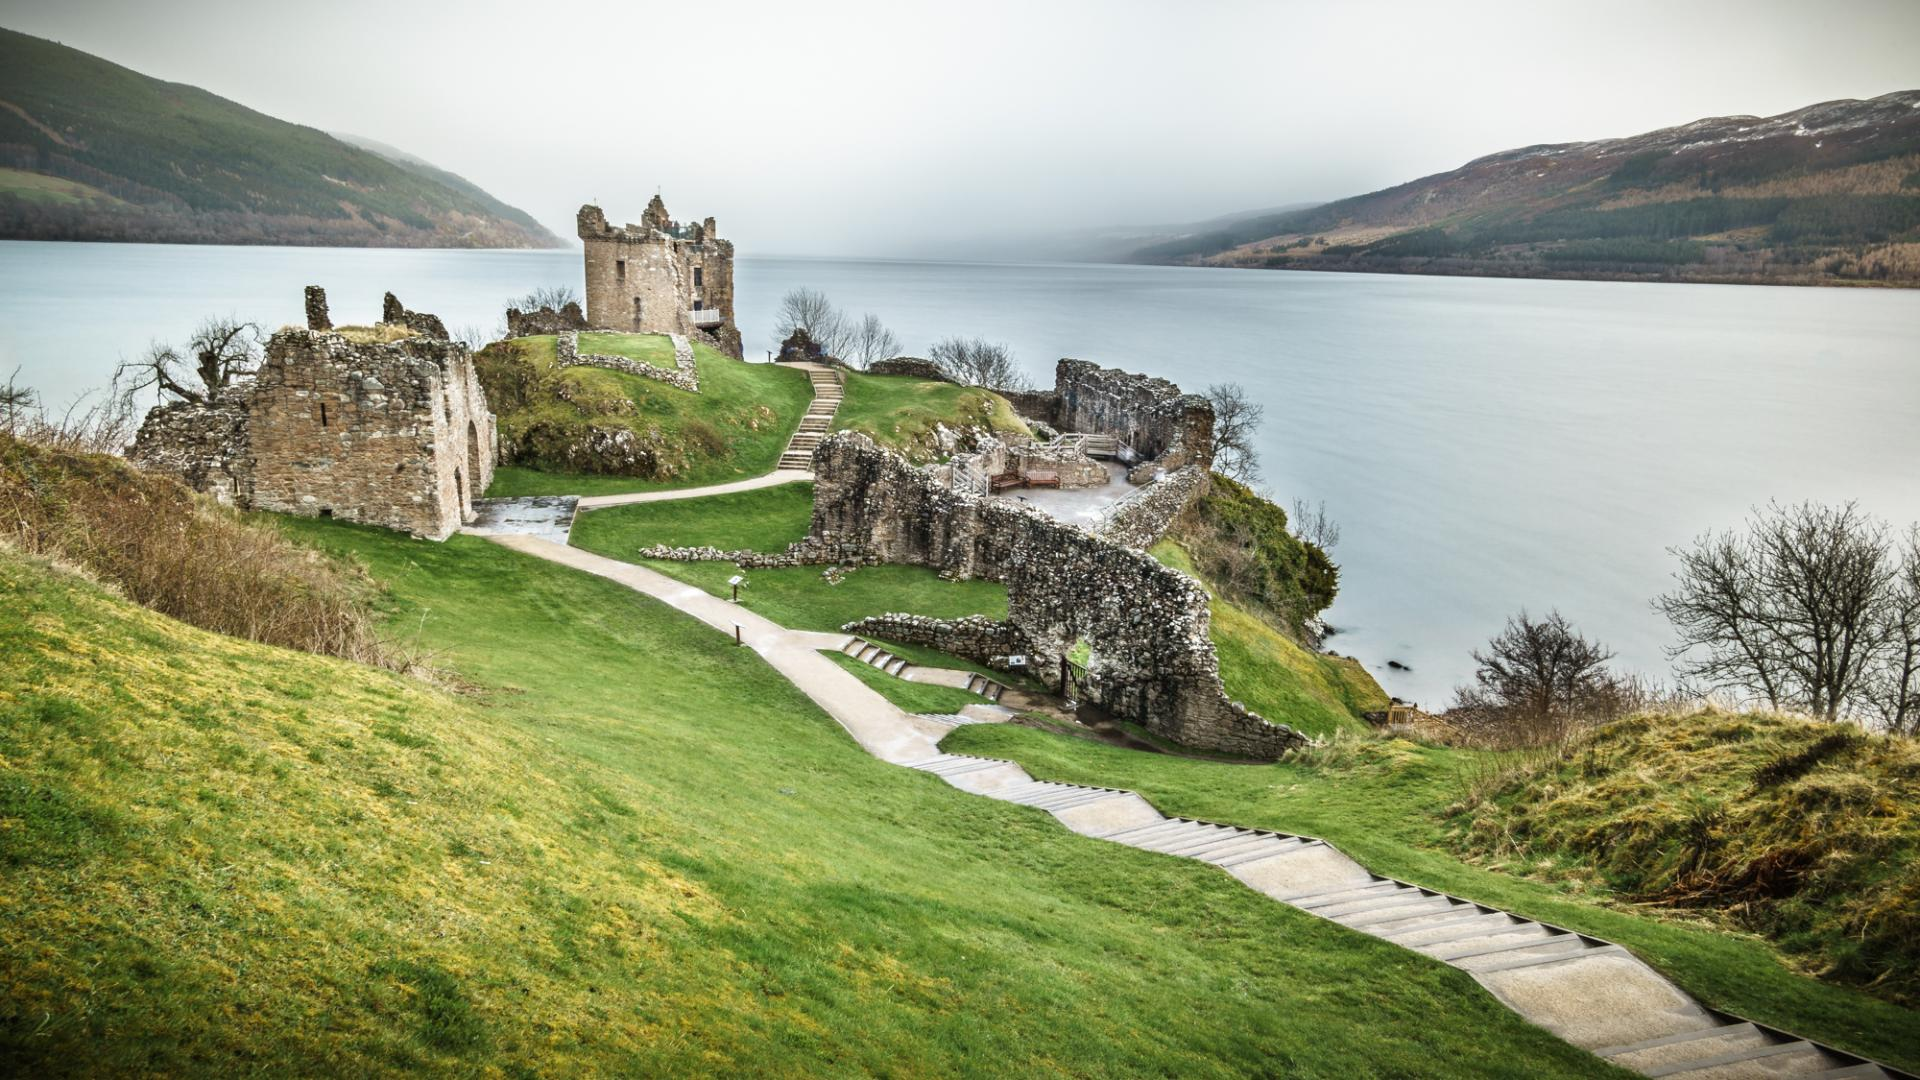 Urquhart castle of the Loch Ness, Inverness, Scotland